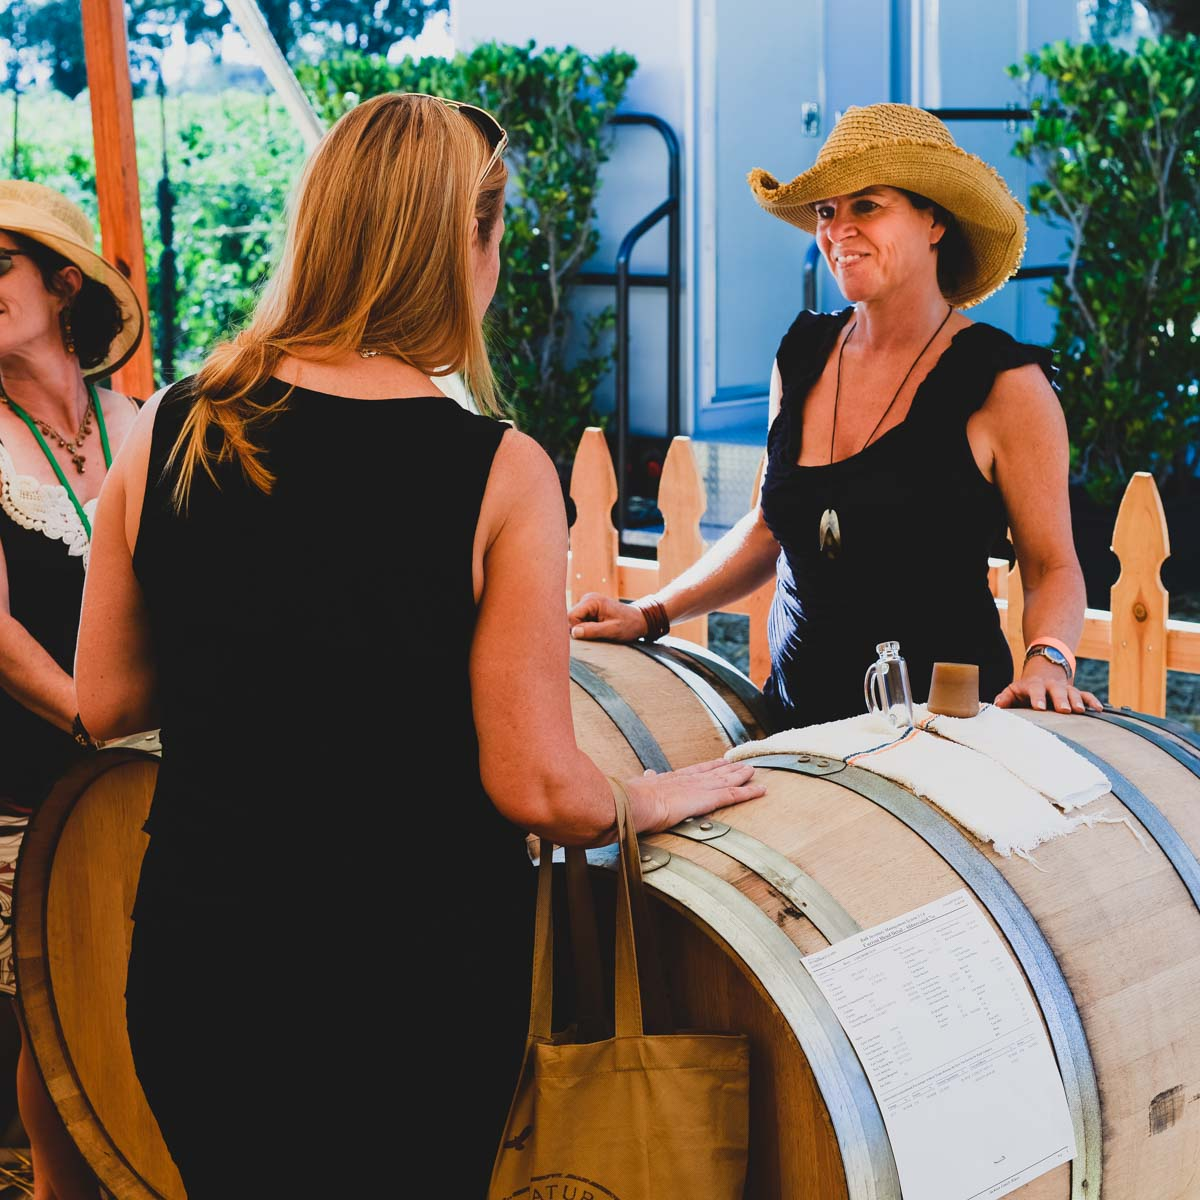 Sampling wine from barrels